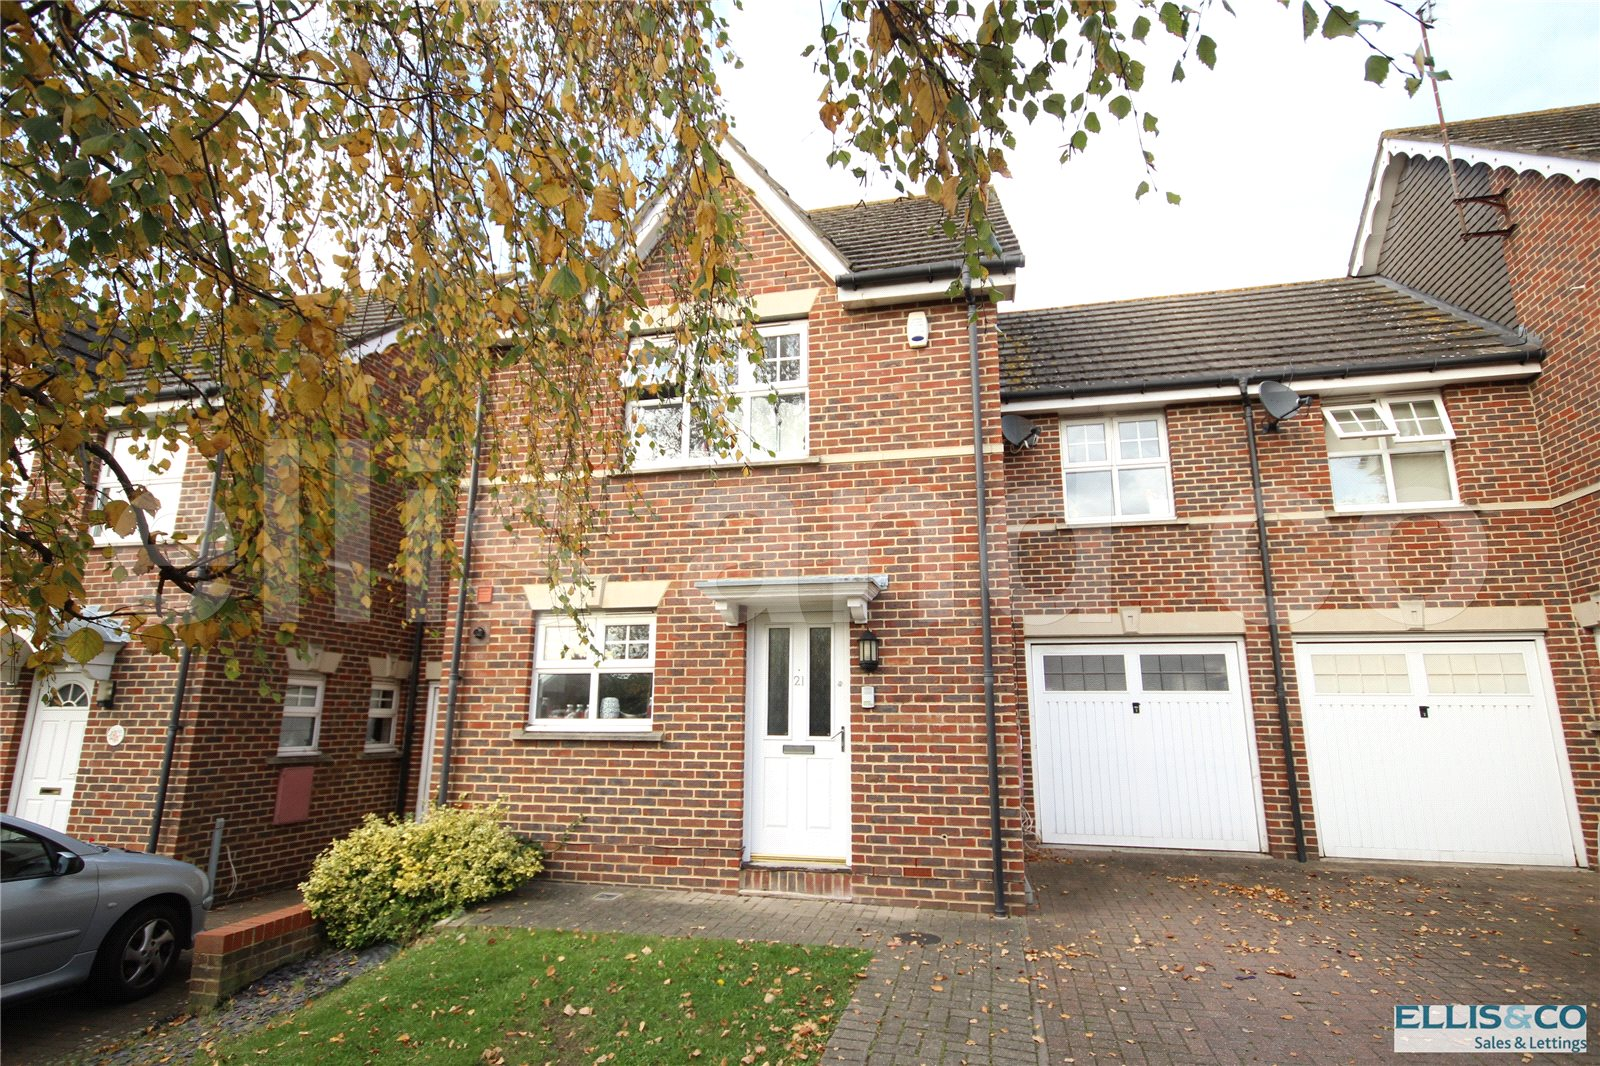 3 Bedrooms Terraced House for sale in Colenso Drive Mill Hill London NW7